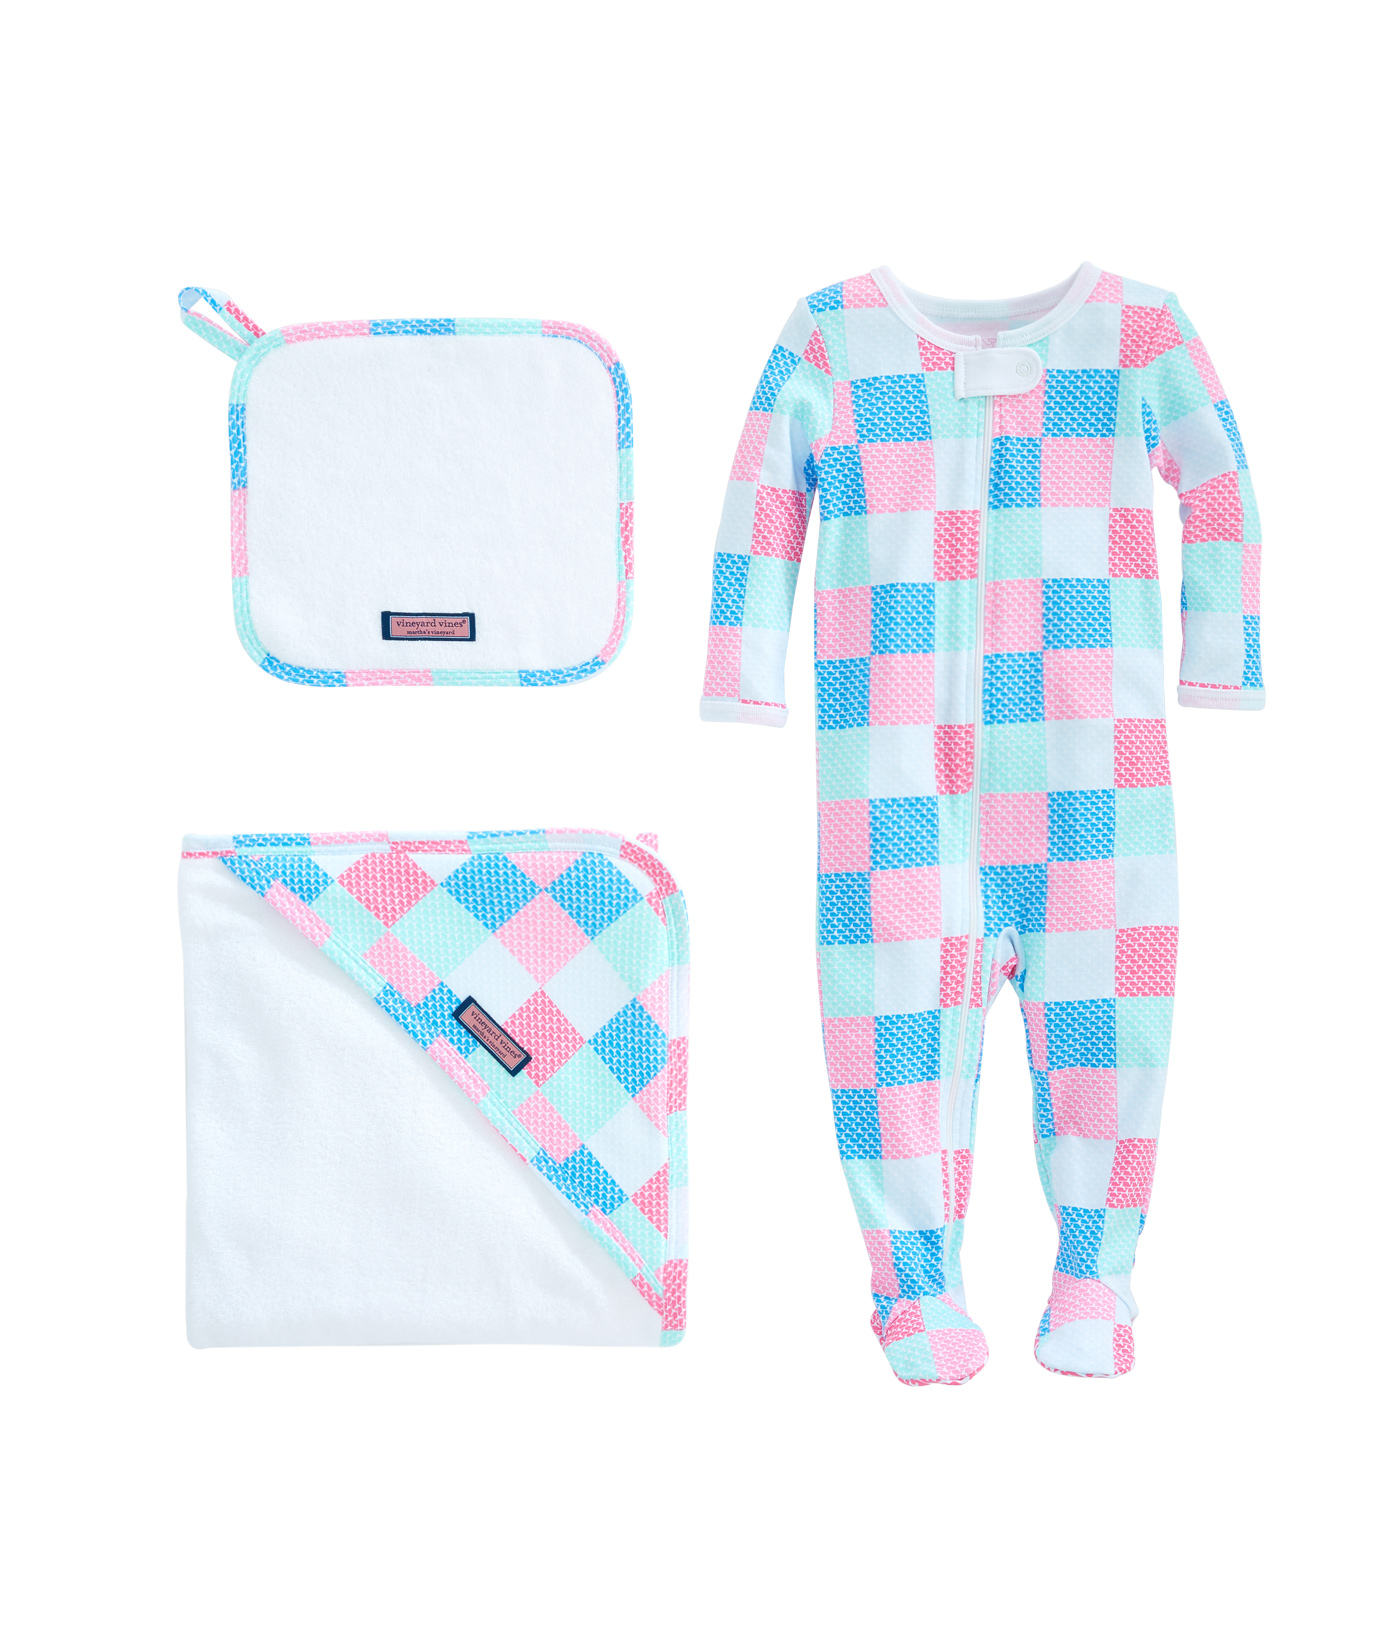 Patchwork Set Baby Baby Patchwork Bath To Bed Set